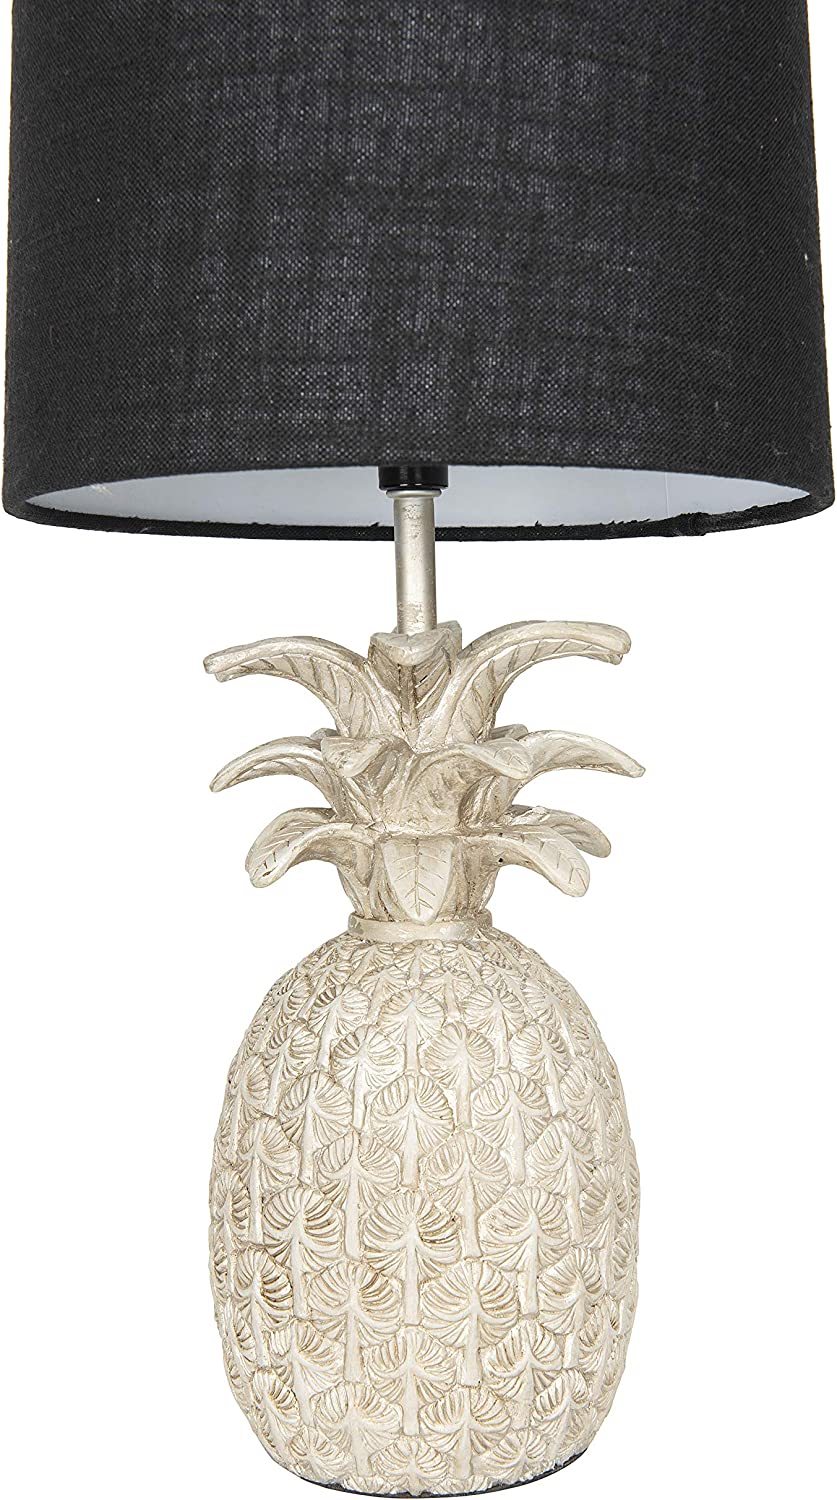 Creative Co-op Pineapple Shaped Table Lamp with Distressed Gold Finish & Linen Shade White